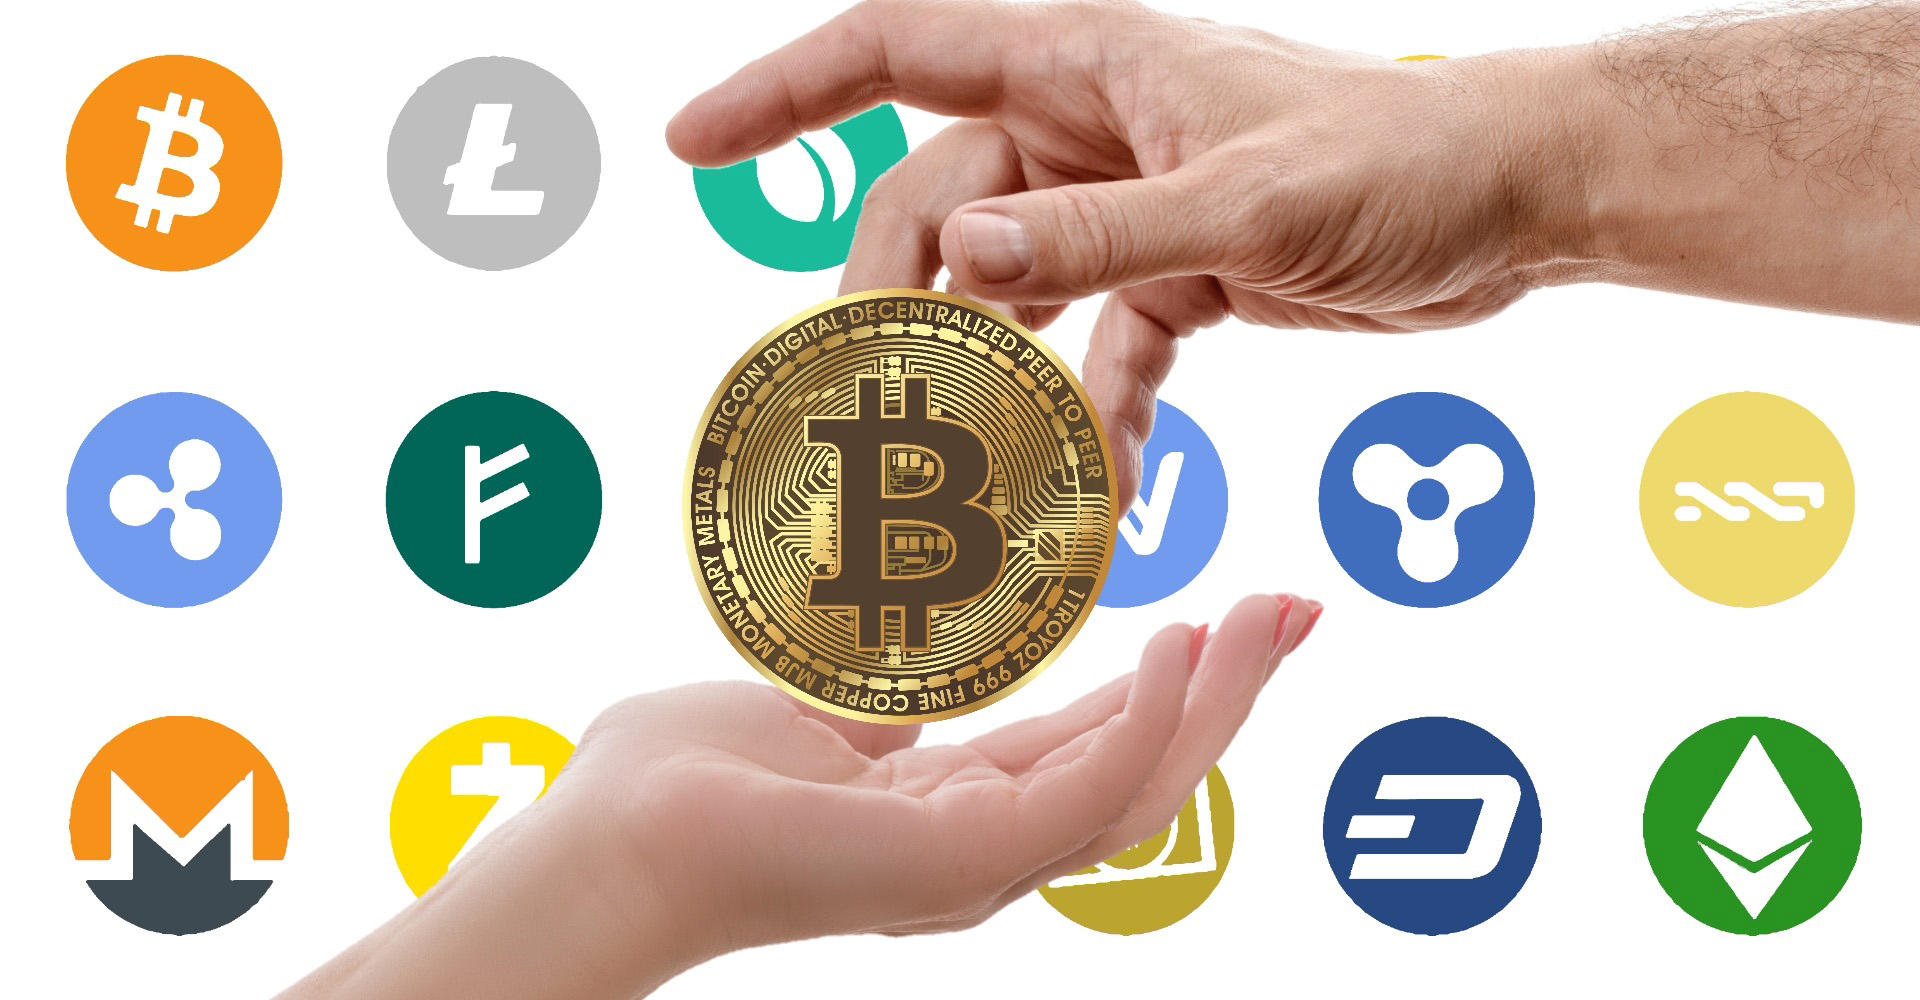 do all cryptocurrencies stay in your bitcoin wallet